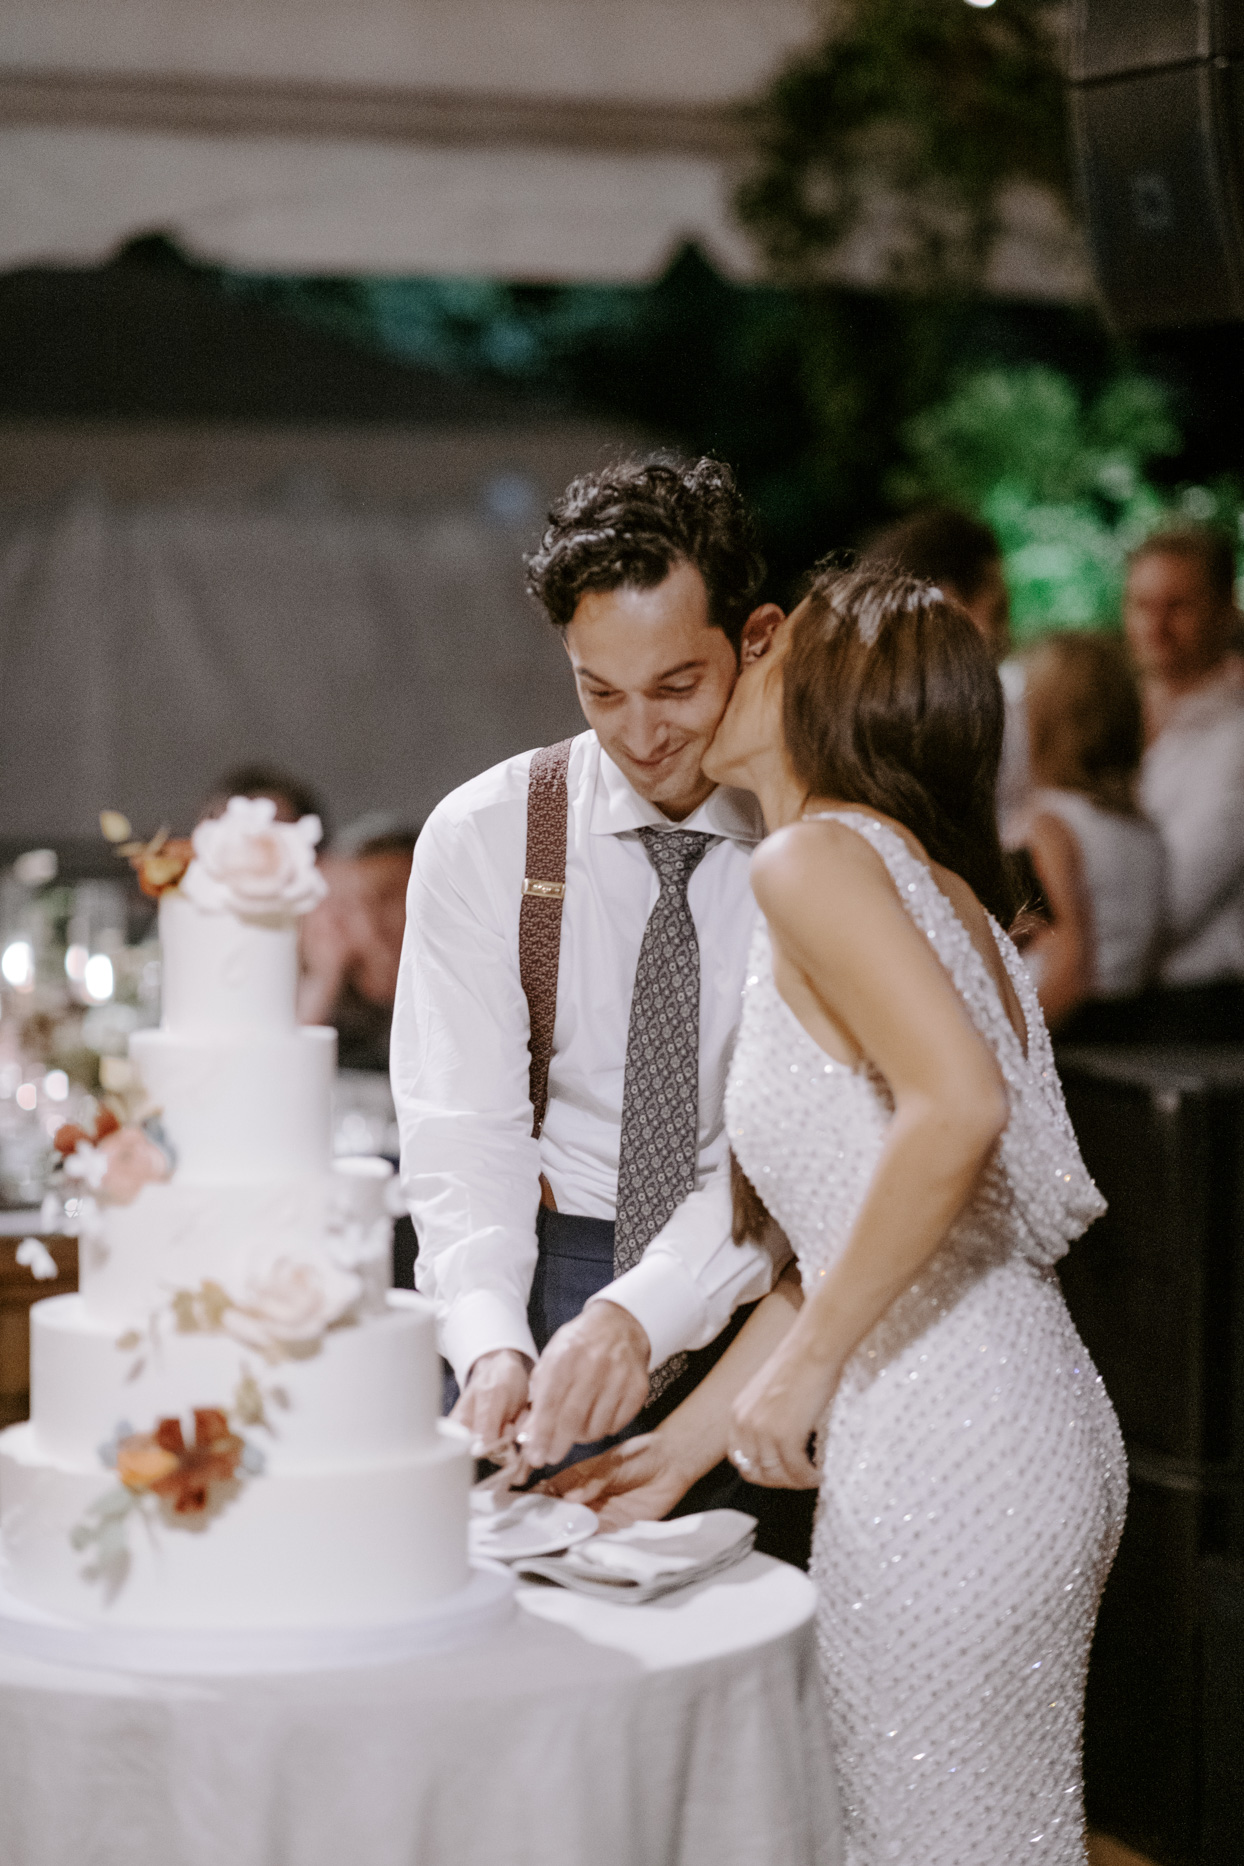 bride kissing groom during cake cutting at reception